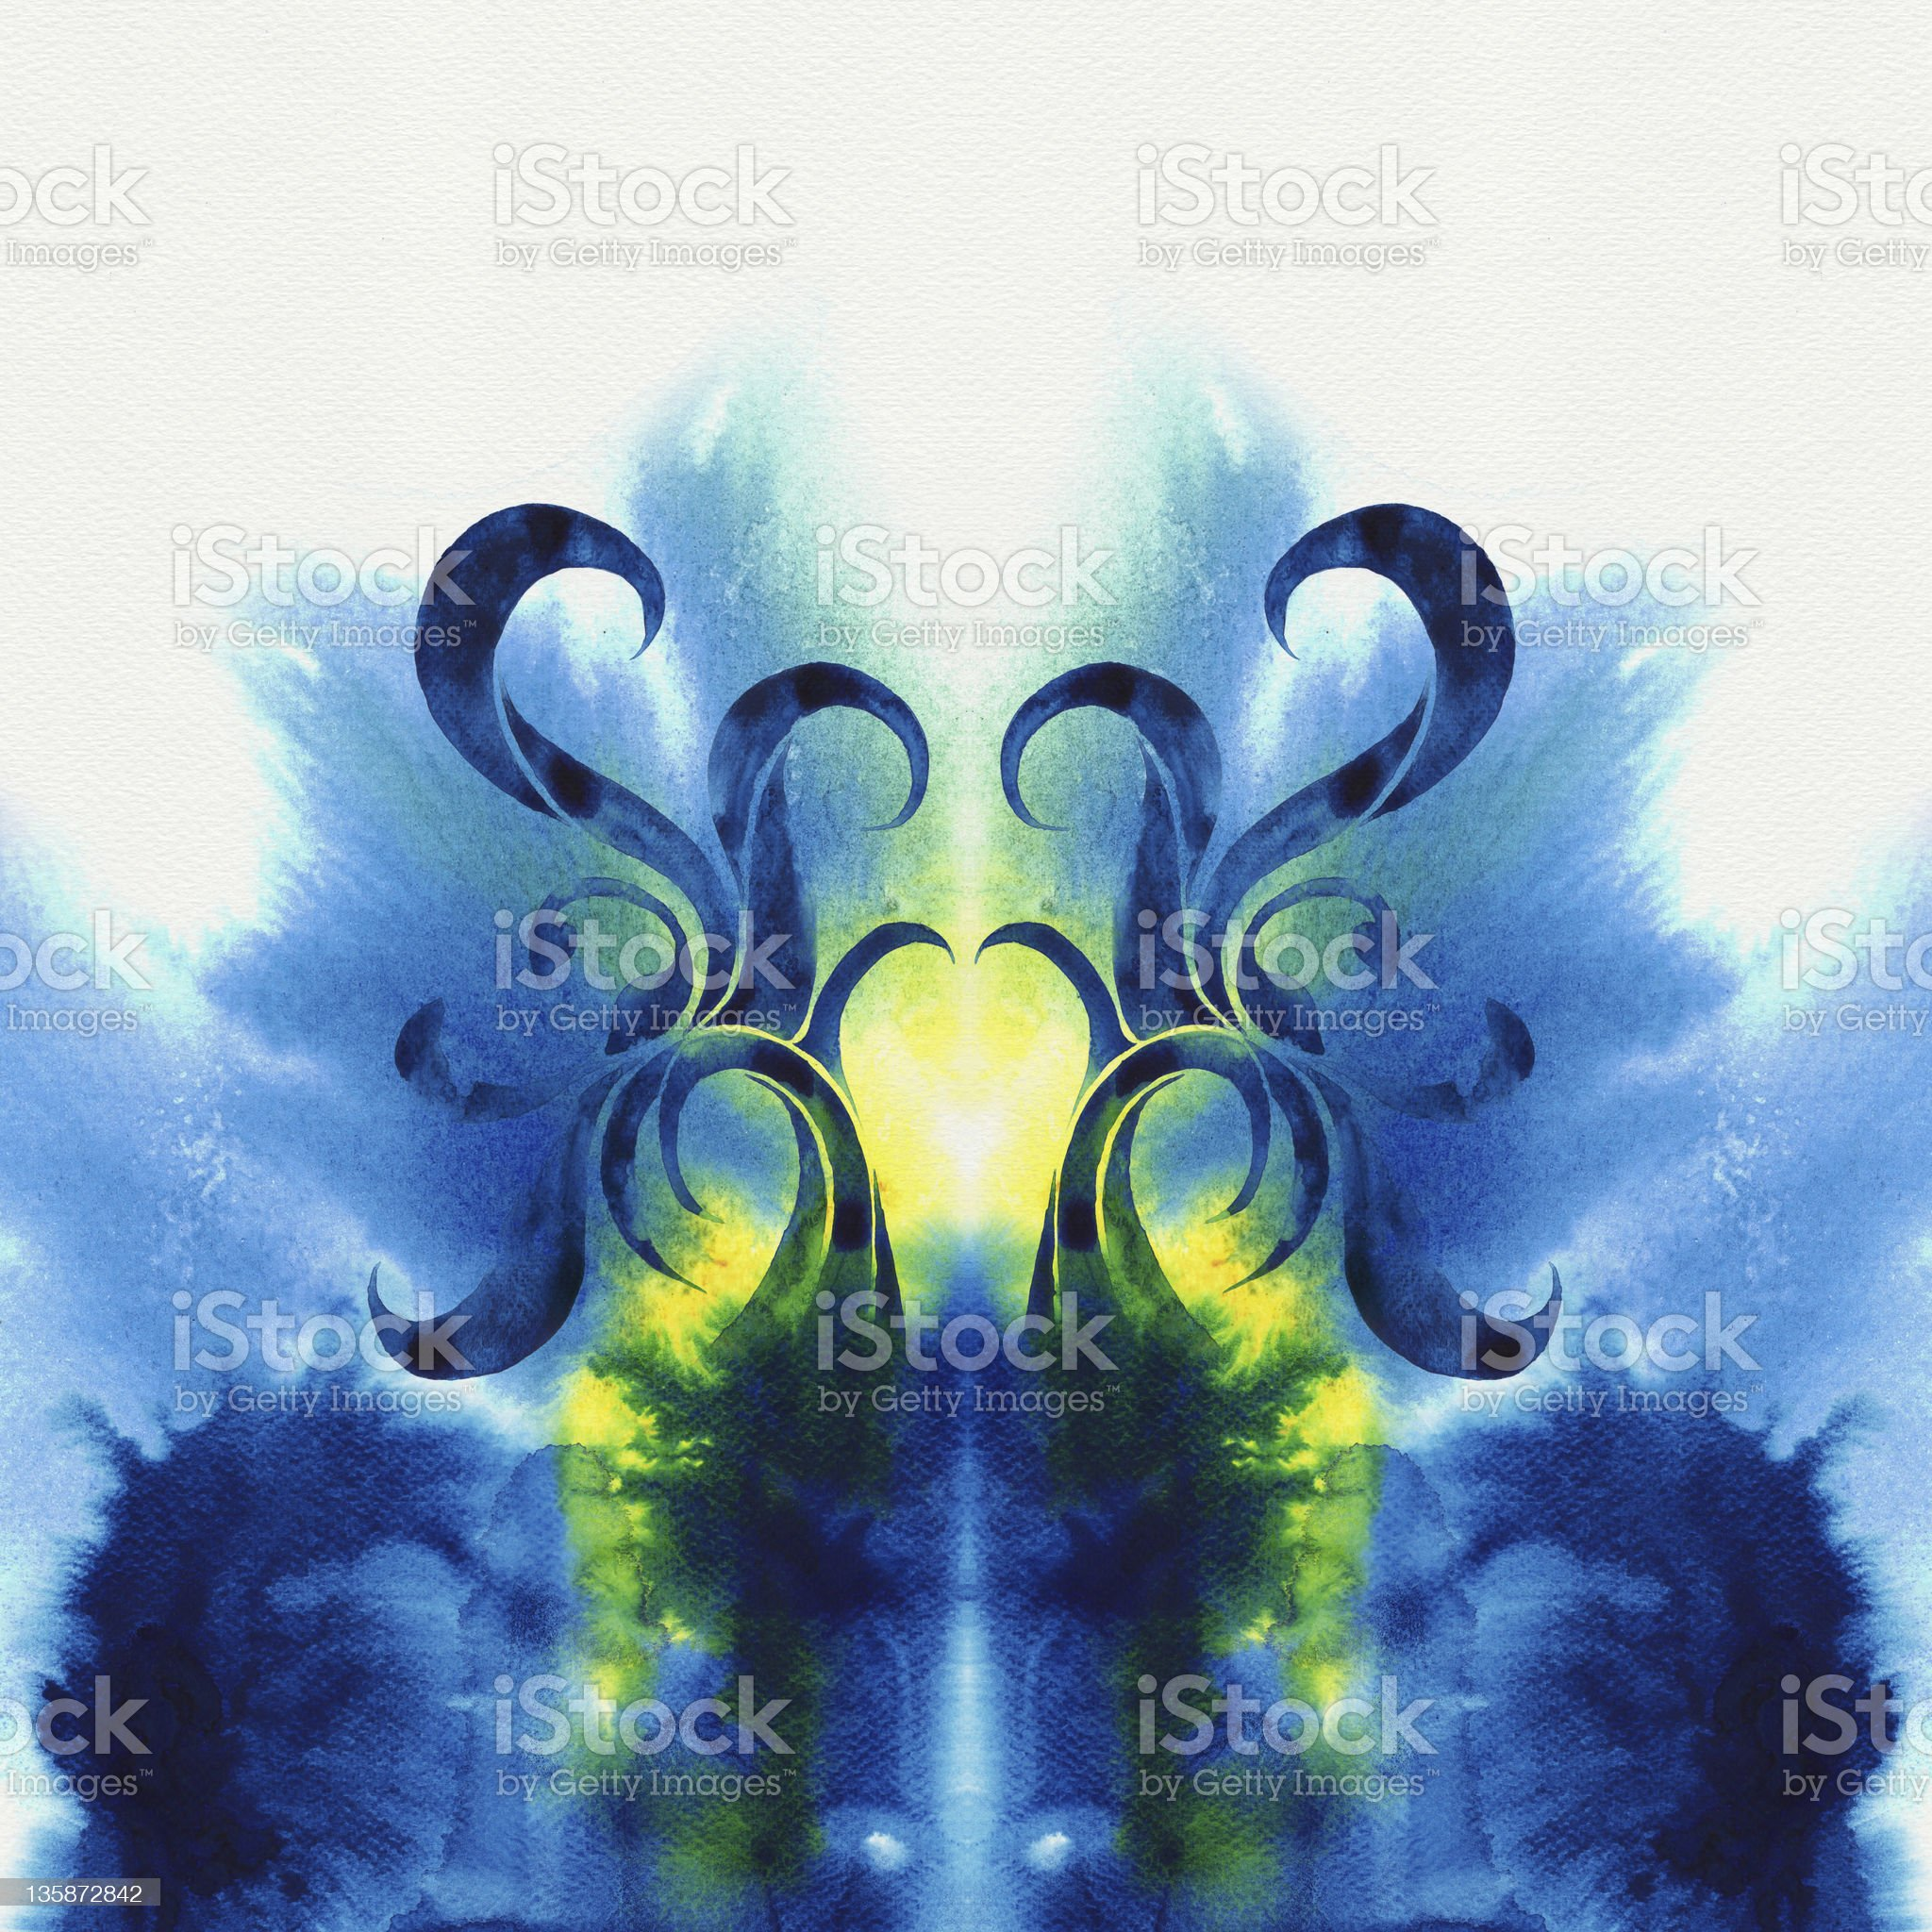 Abstract spread watercolors royalty-free stock vector art